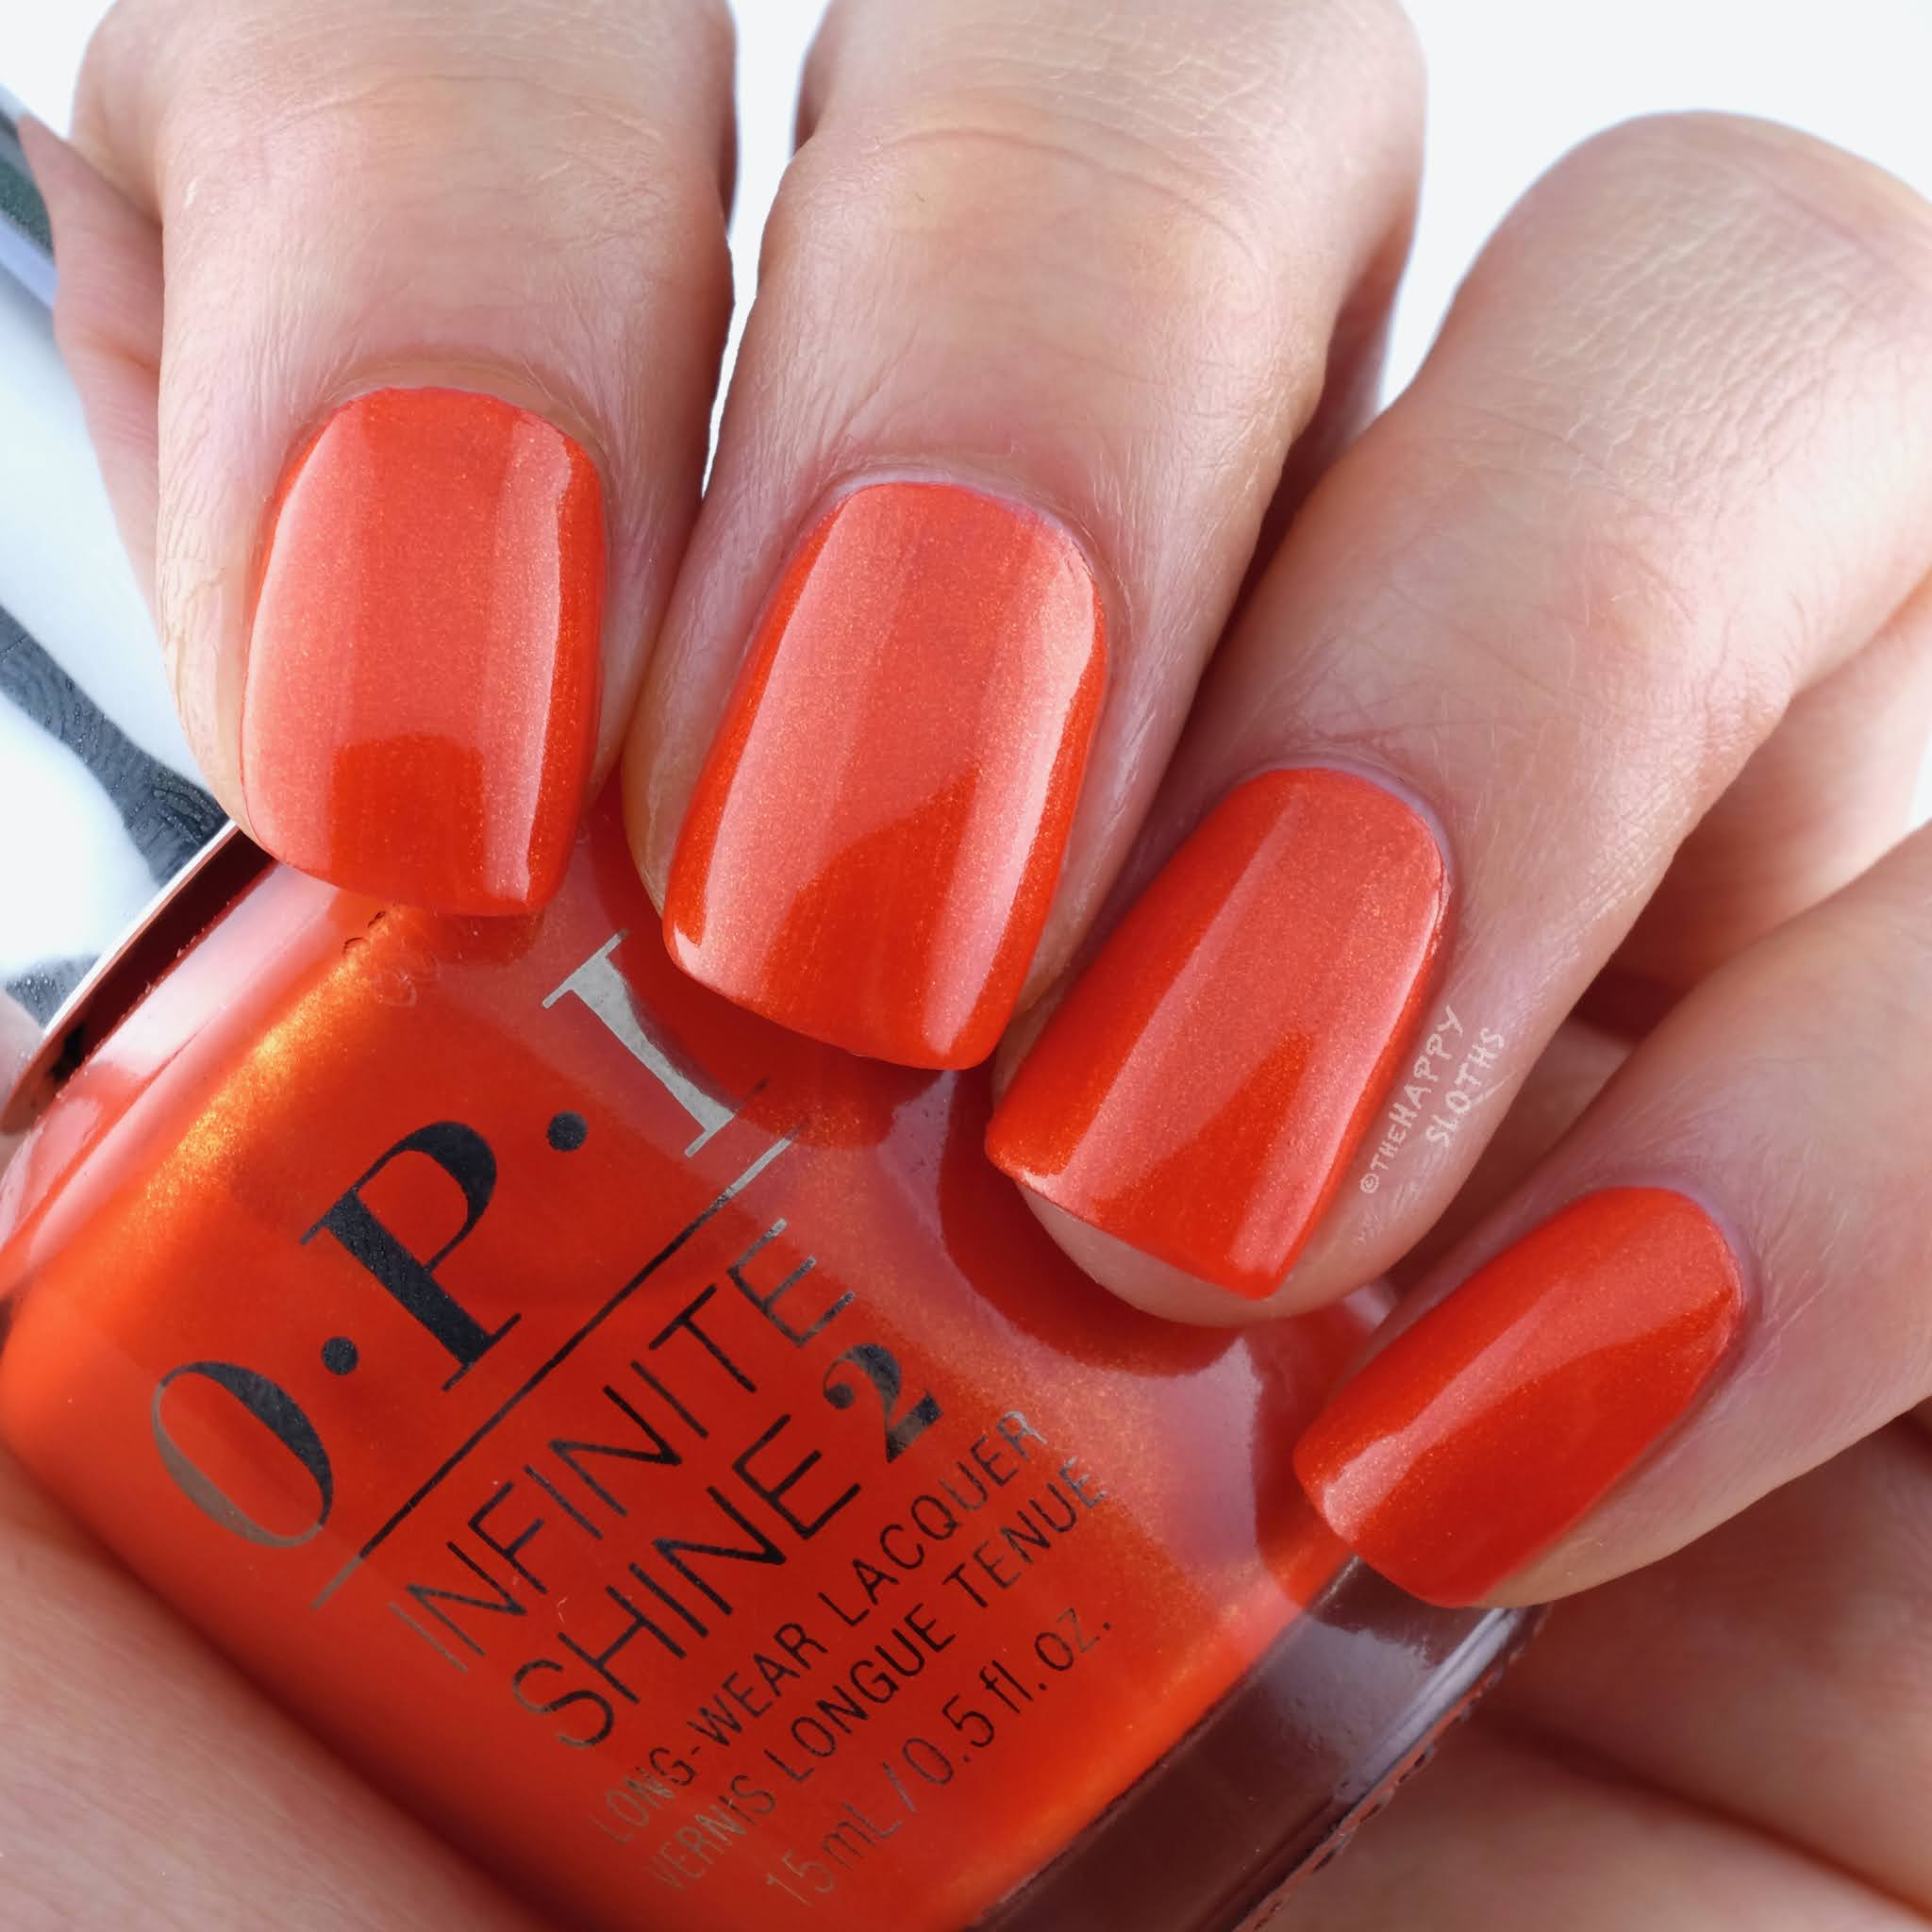 OPI Summer 2021 Malibu Collection   PCH Love Song: Review and Swatches